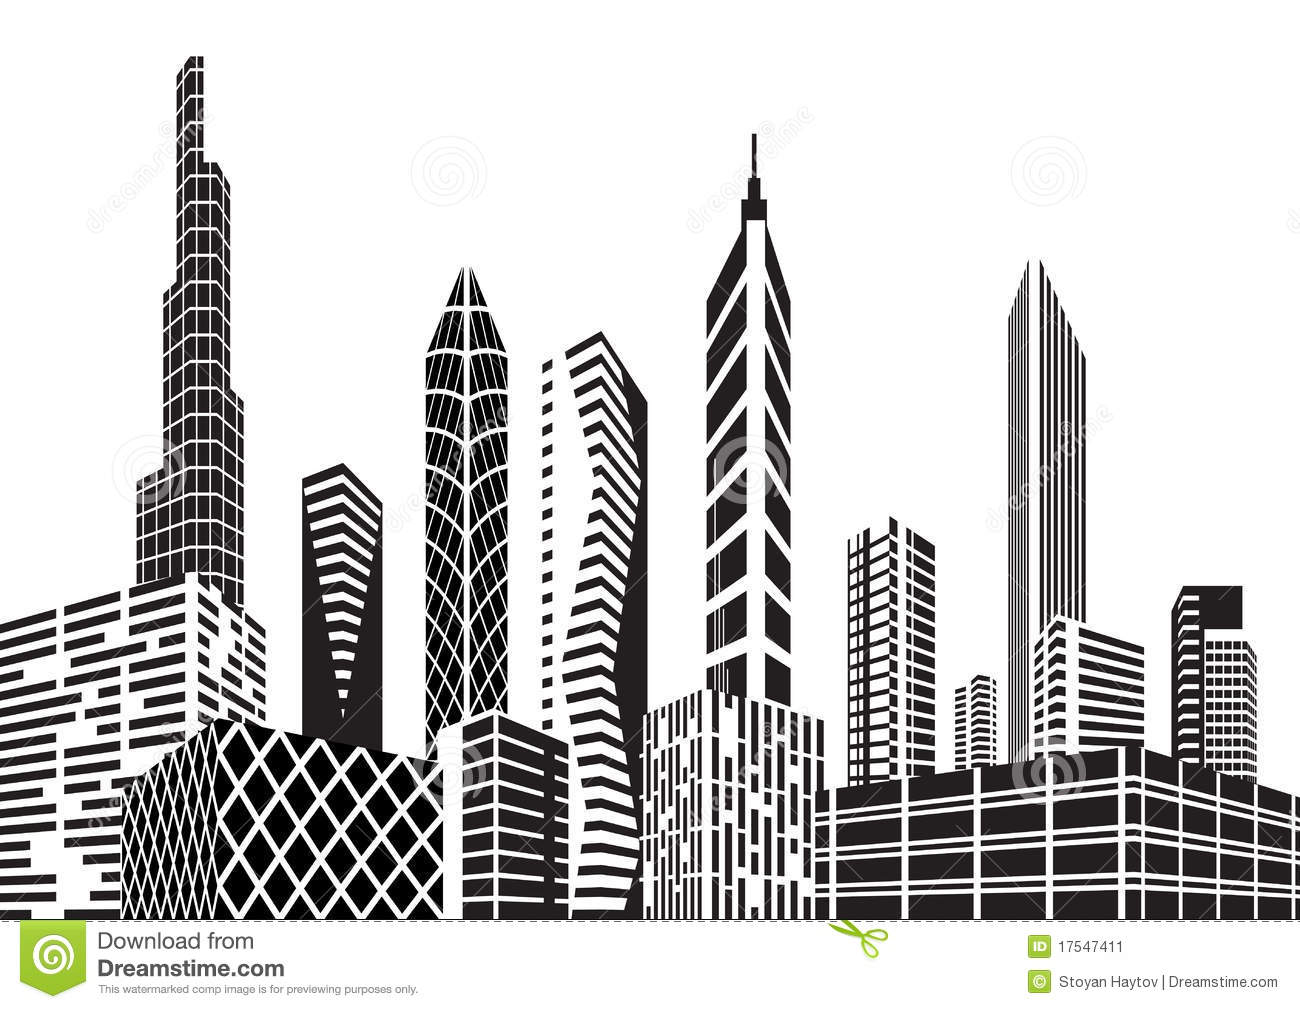 City buildings clipart black and white 6 » Clipart Station.